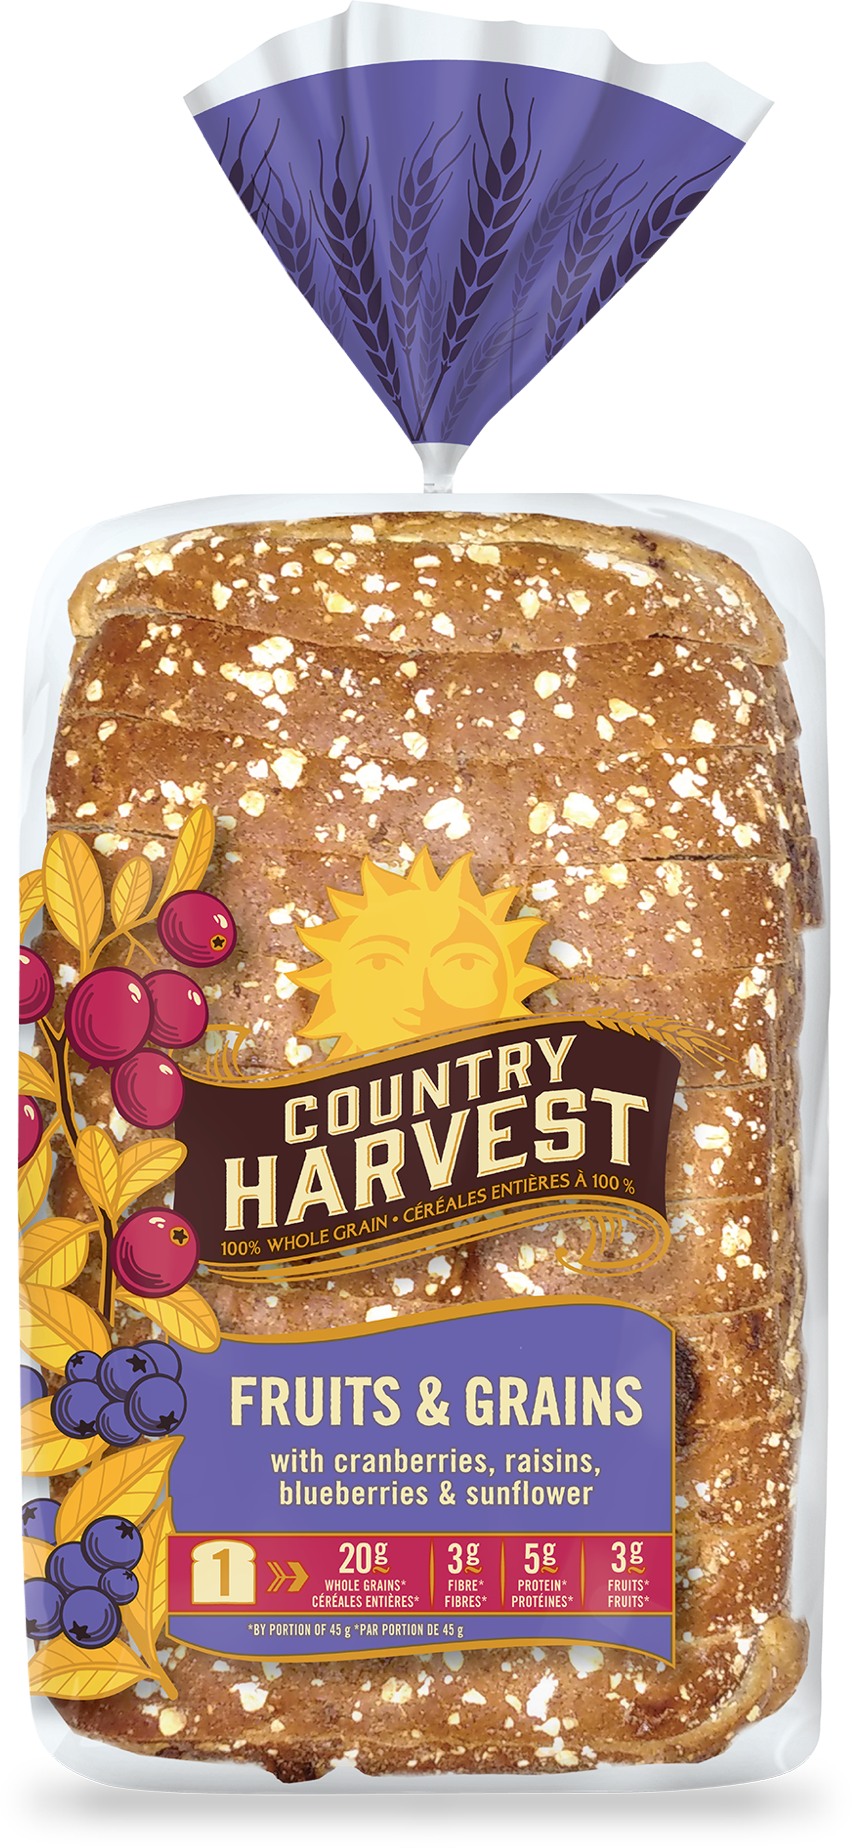 Fruits country harvest chfruitsandgrainsdfacehr. Grains clipart protein